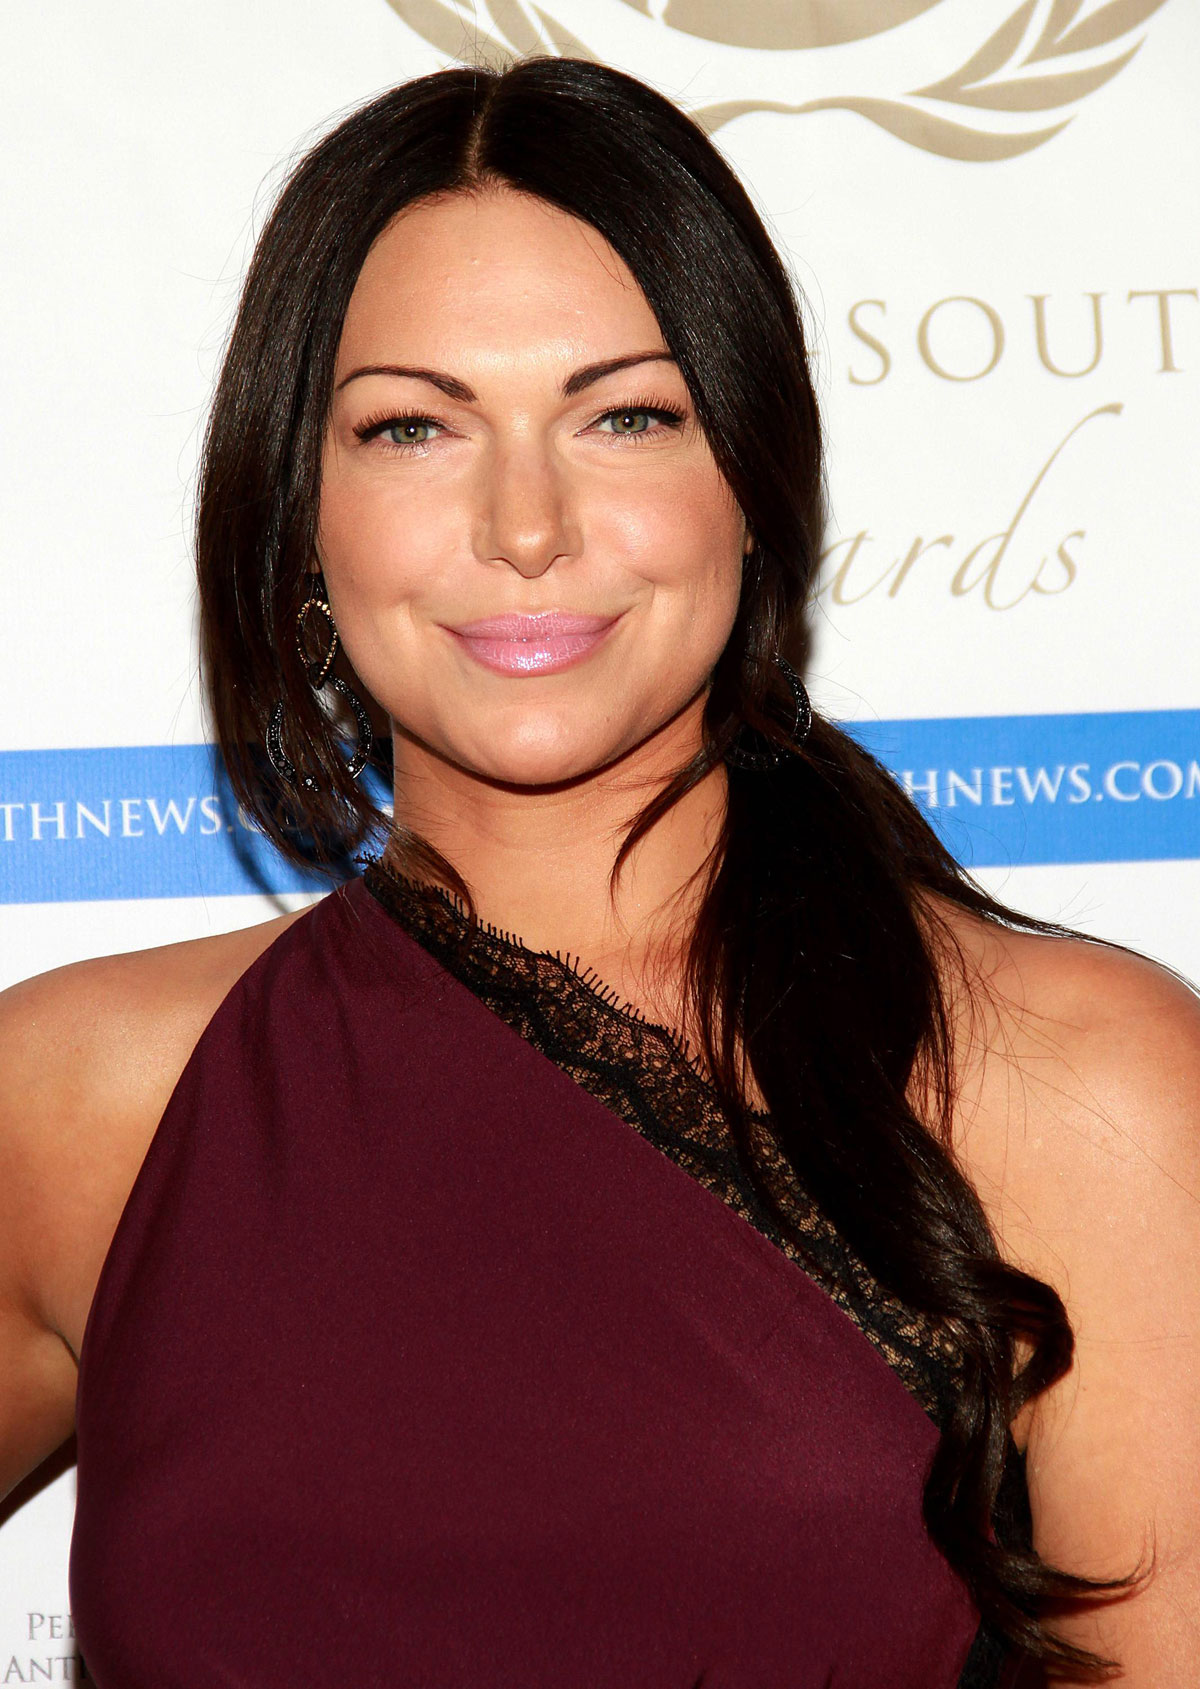 Laura Prepon - Gallery Photo Colection